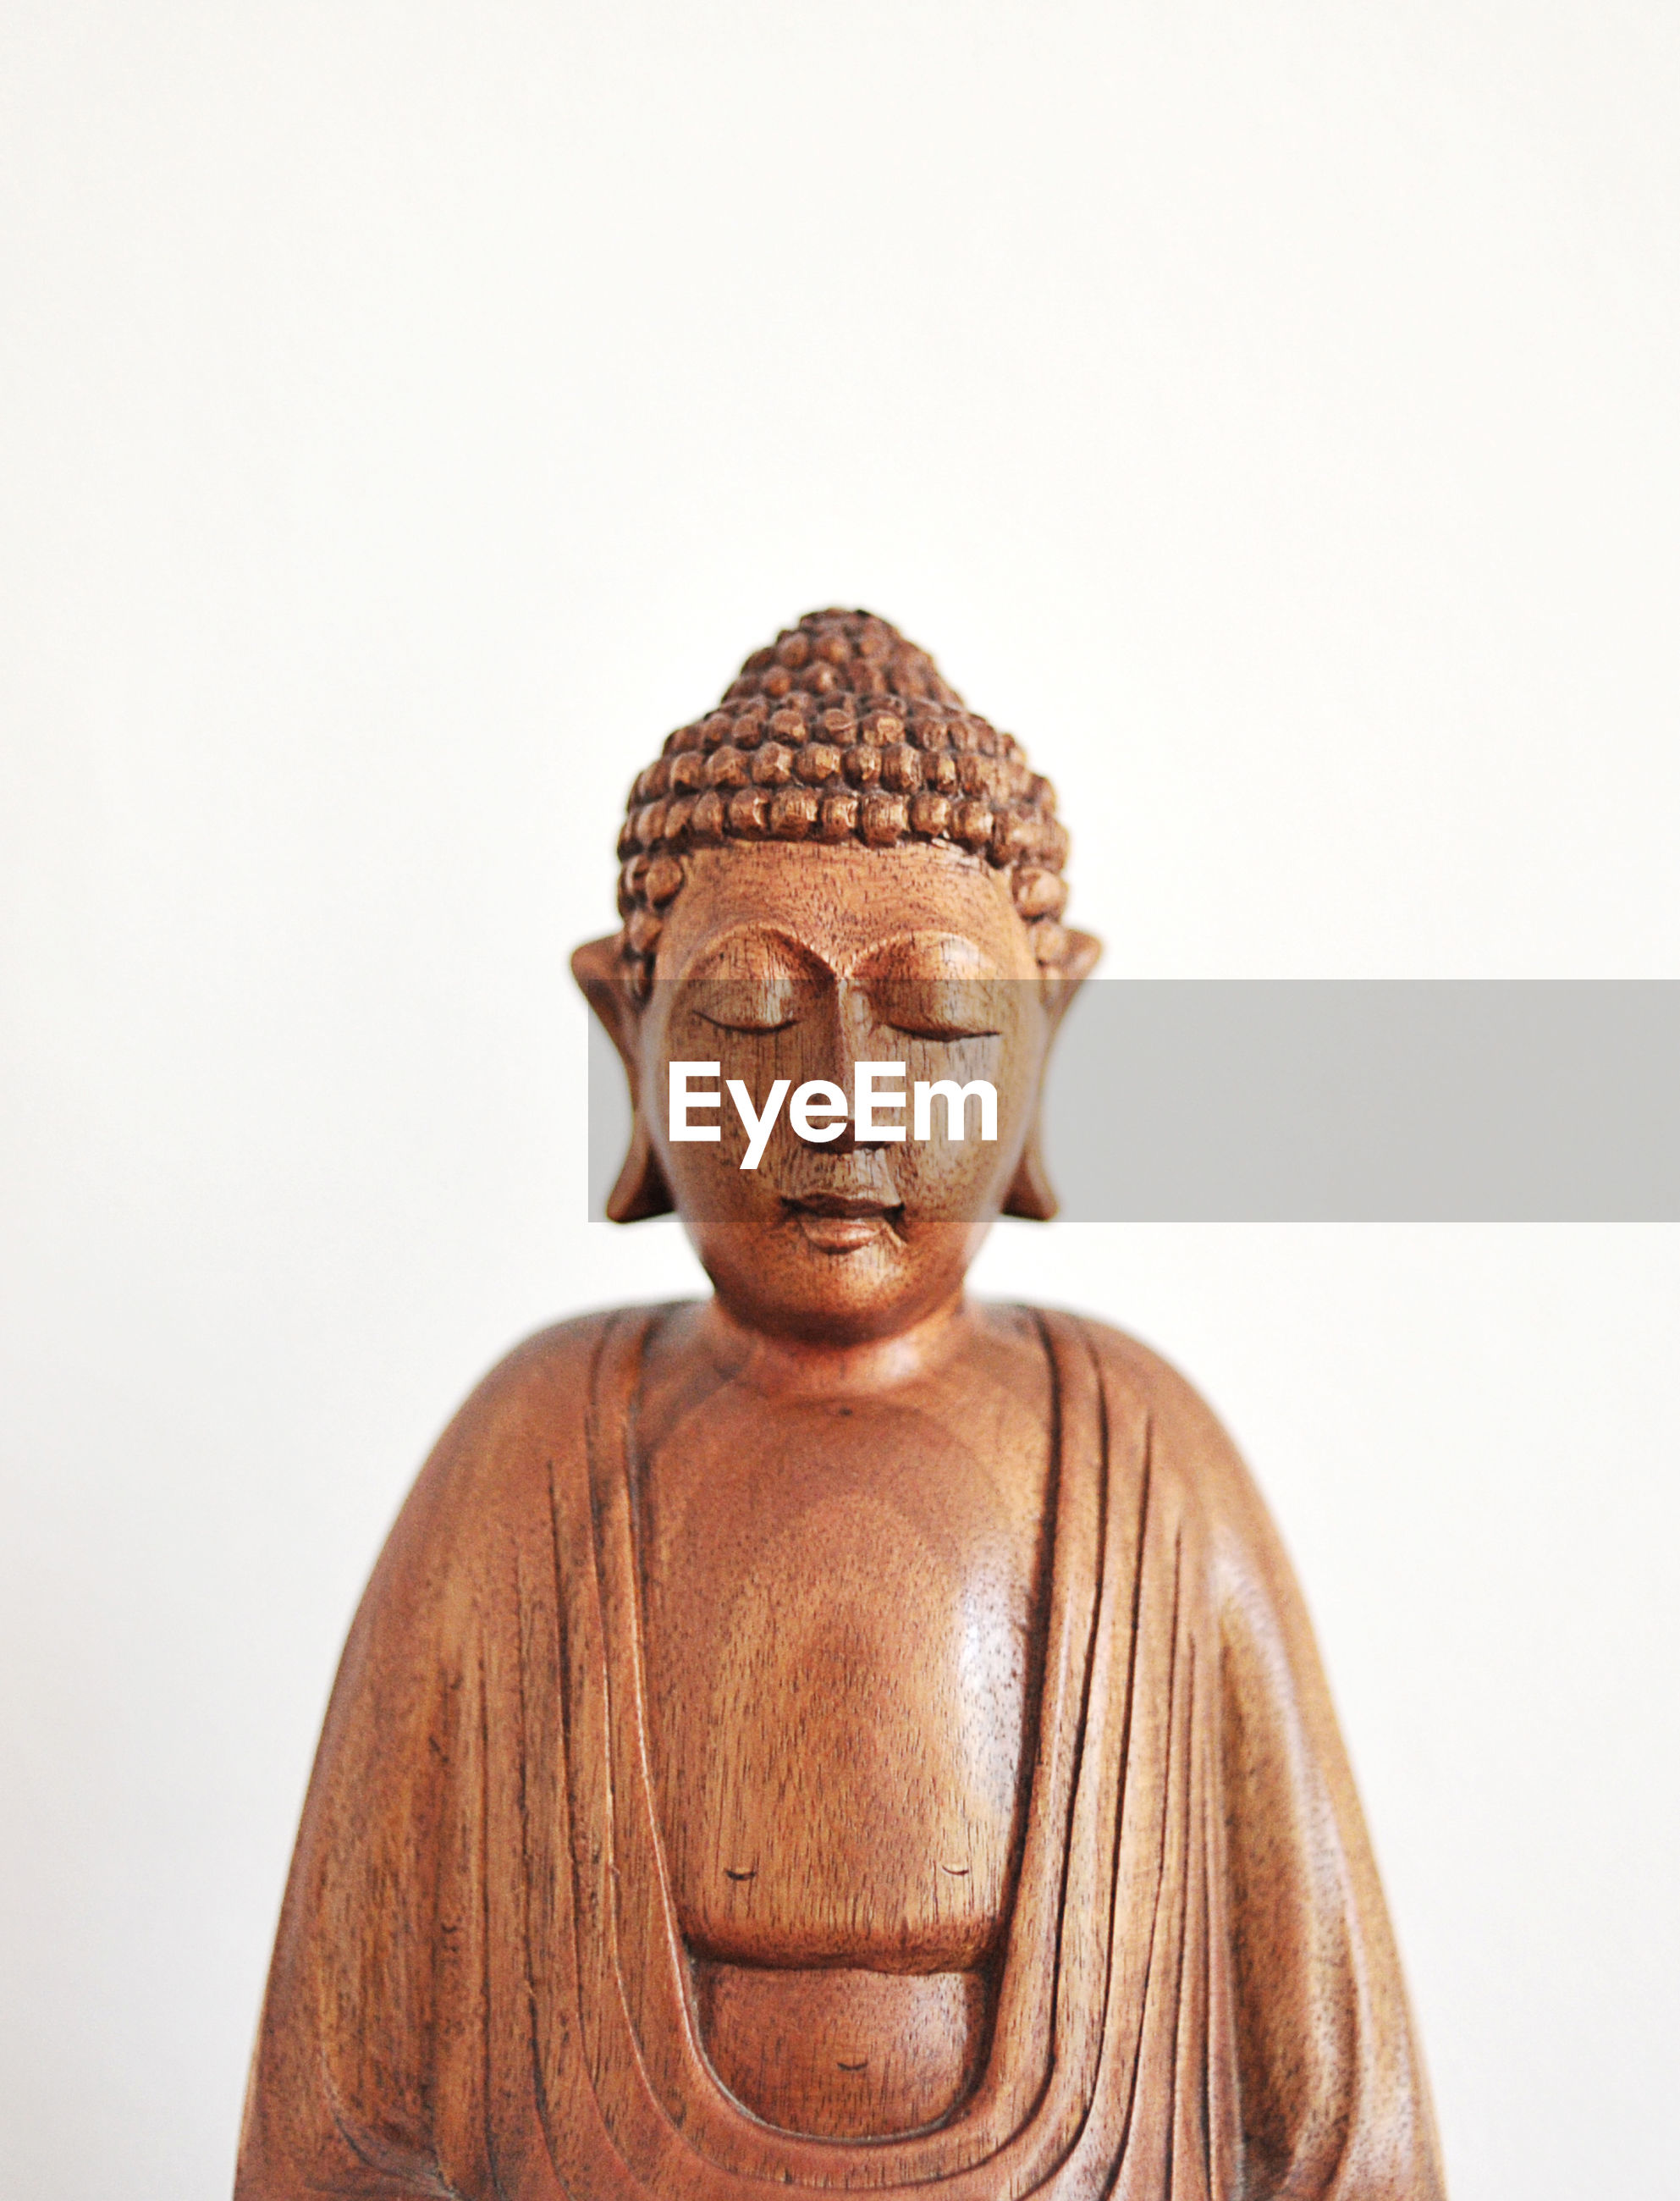 Wooden buddha sculpture against white background